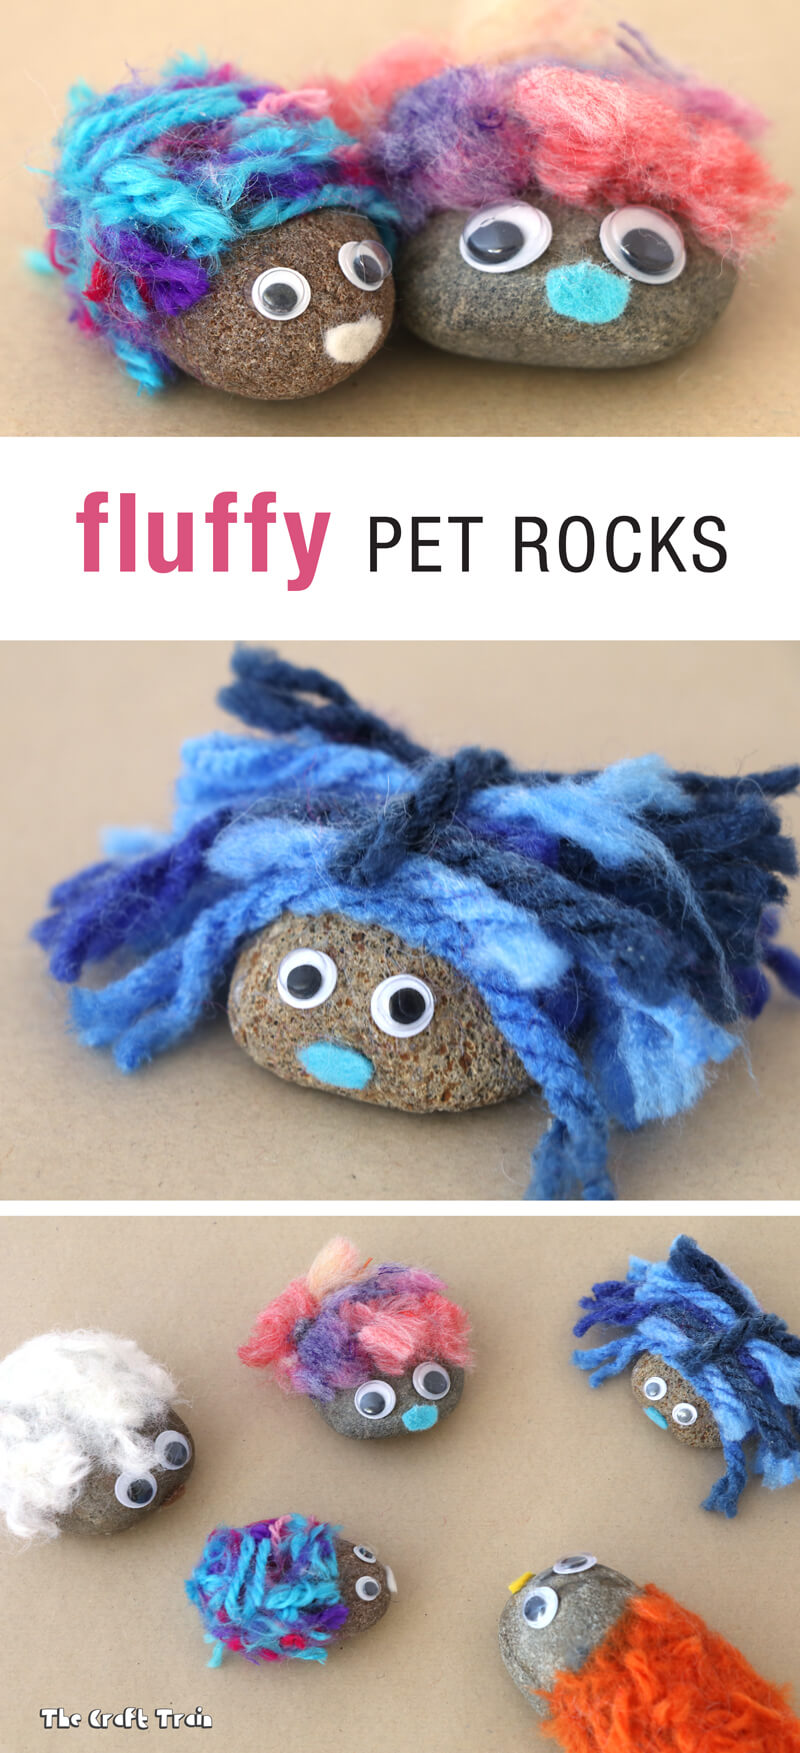 Create adorable fluffy rocks with yarn pom pom trimmings. This is a great kids craft idea!